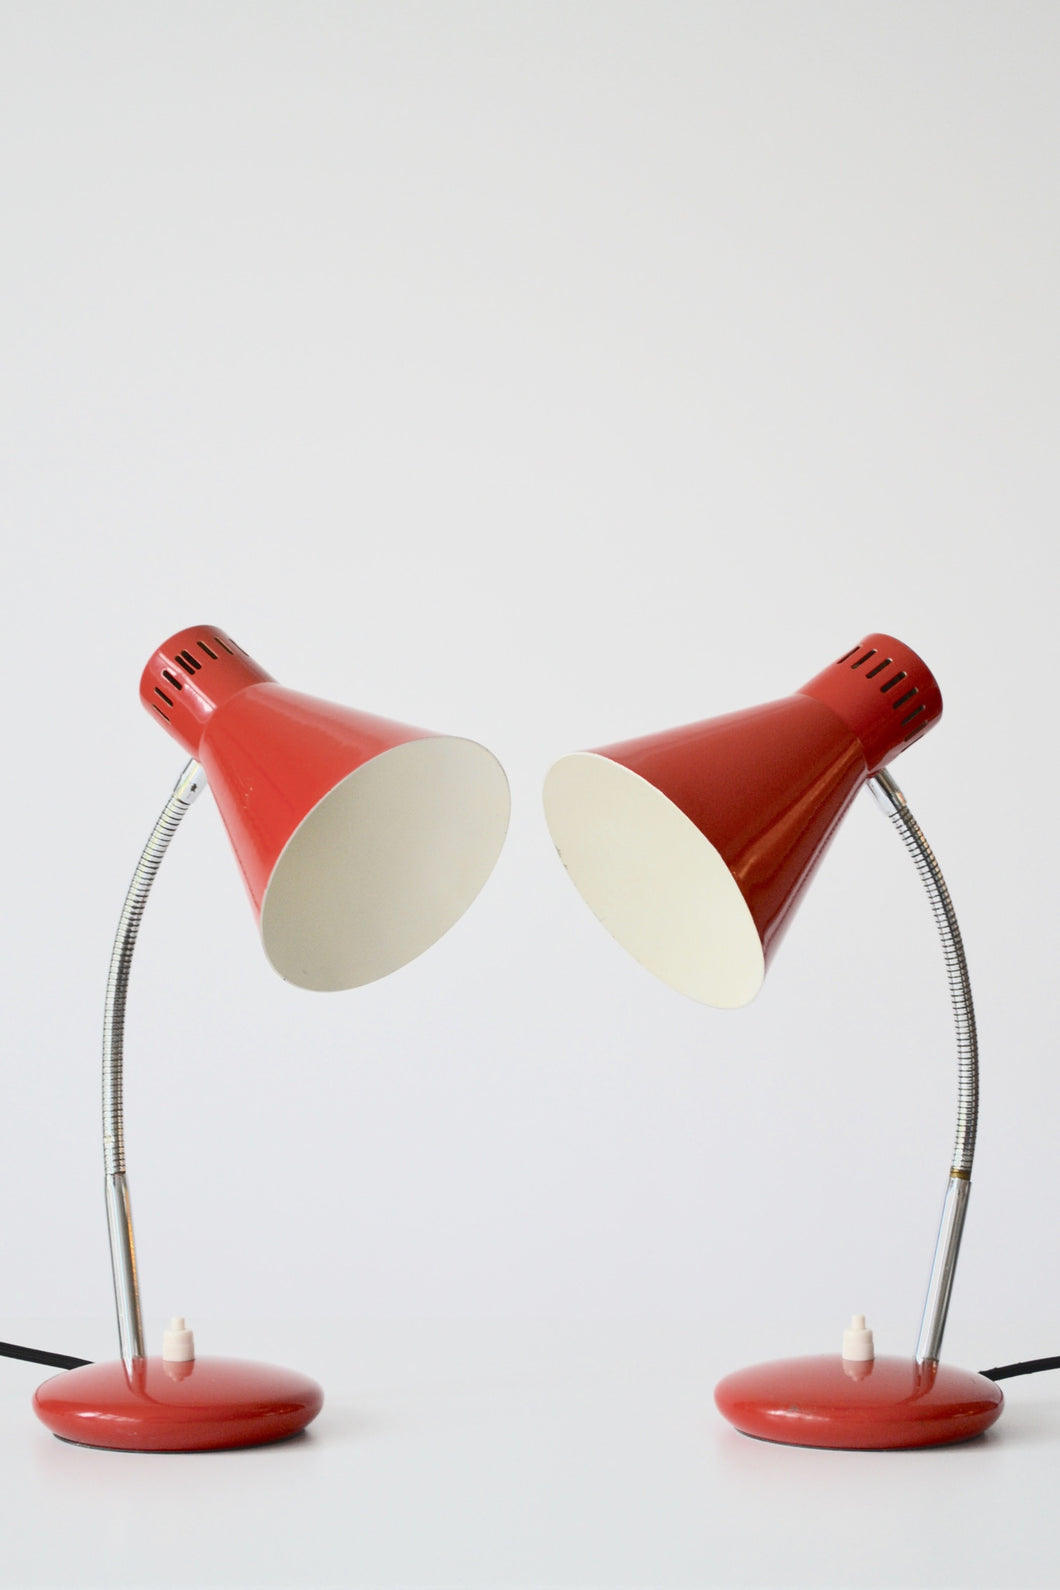 Pair Of Italain Mid Century Desk Lamps by Stilnovo - Mid Century Modern - 1960's - SOLD